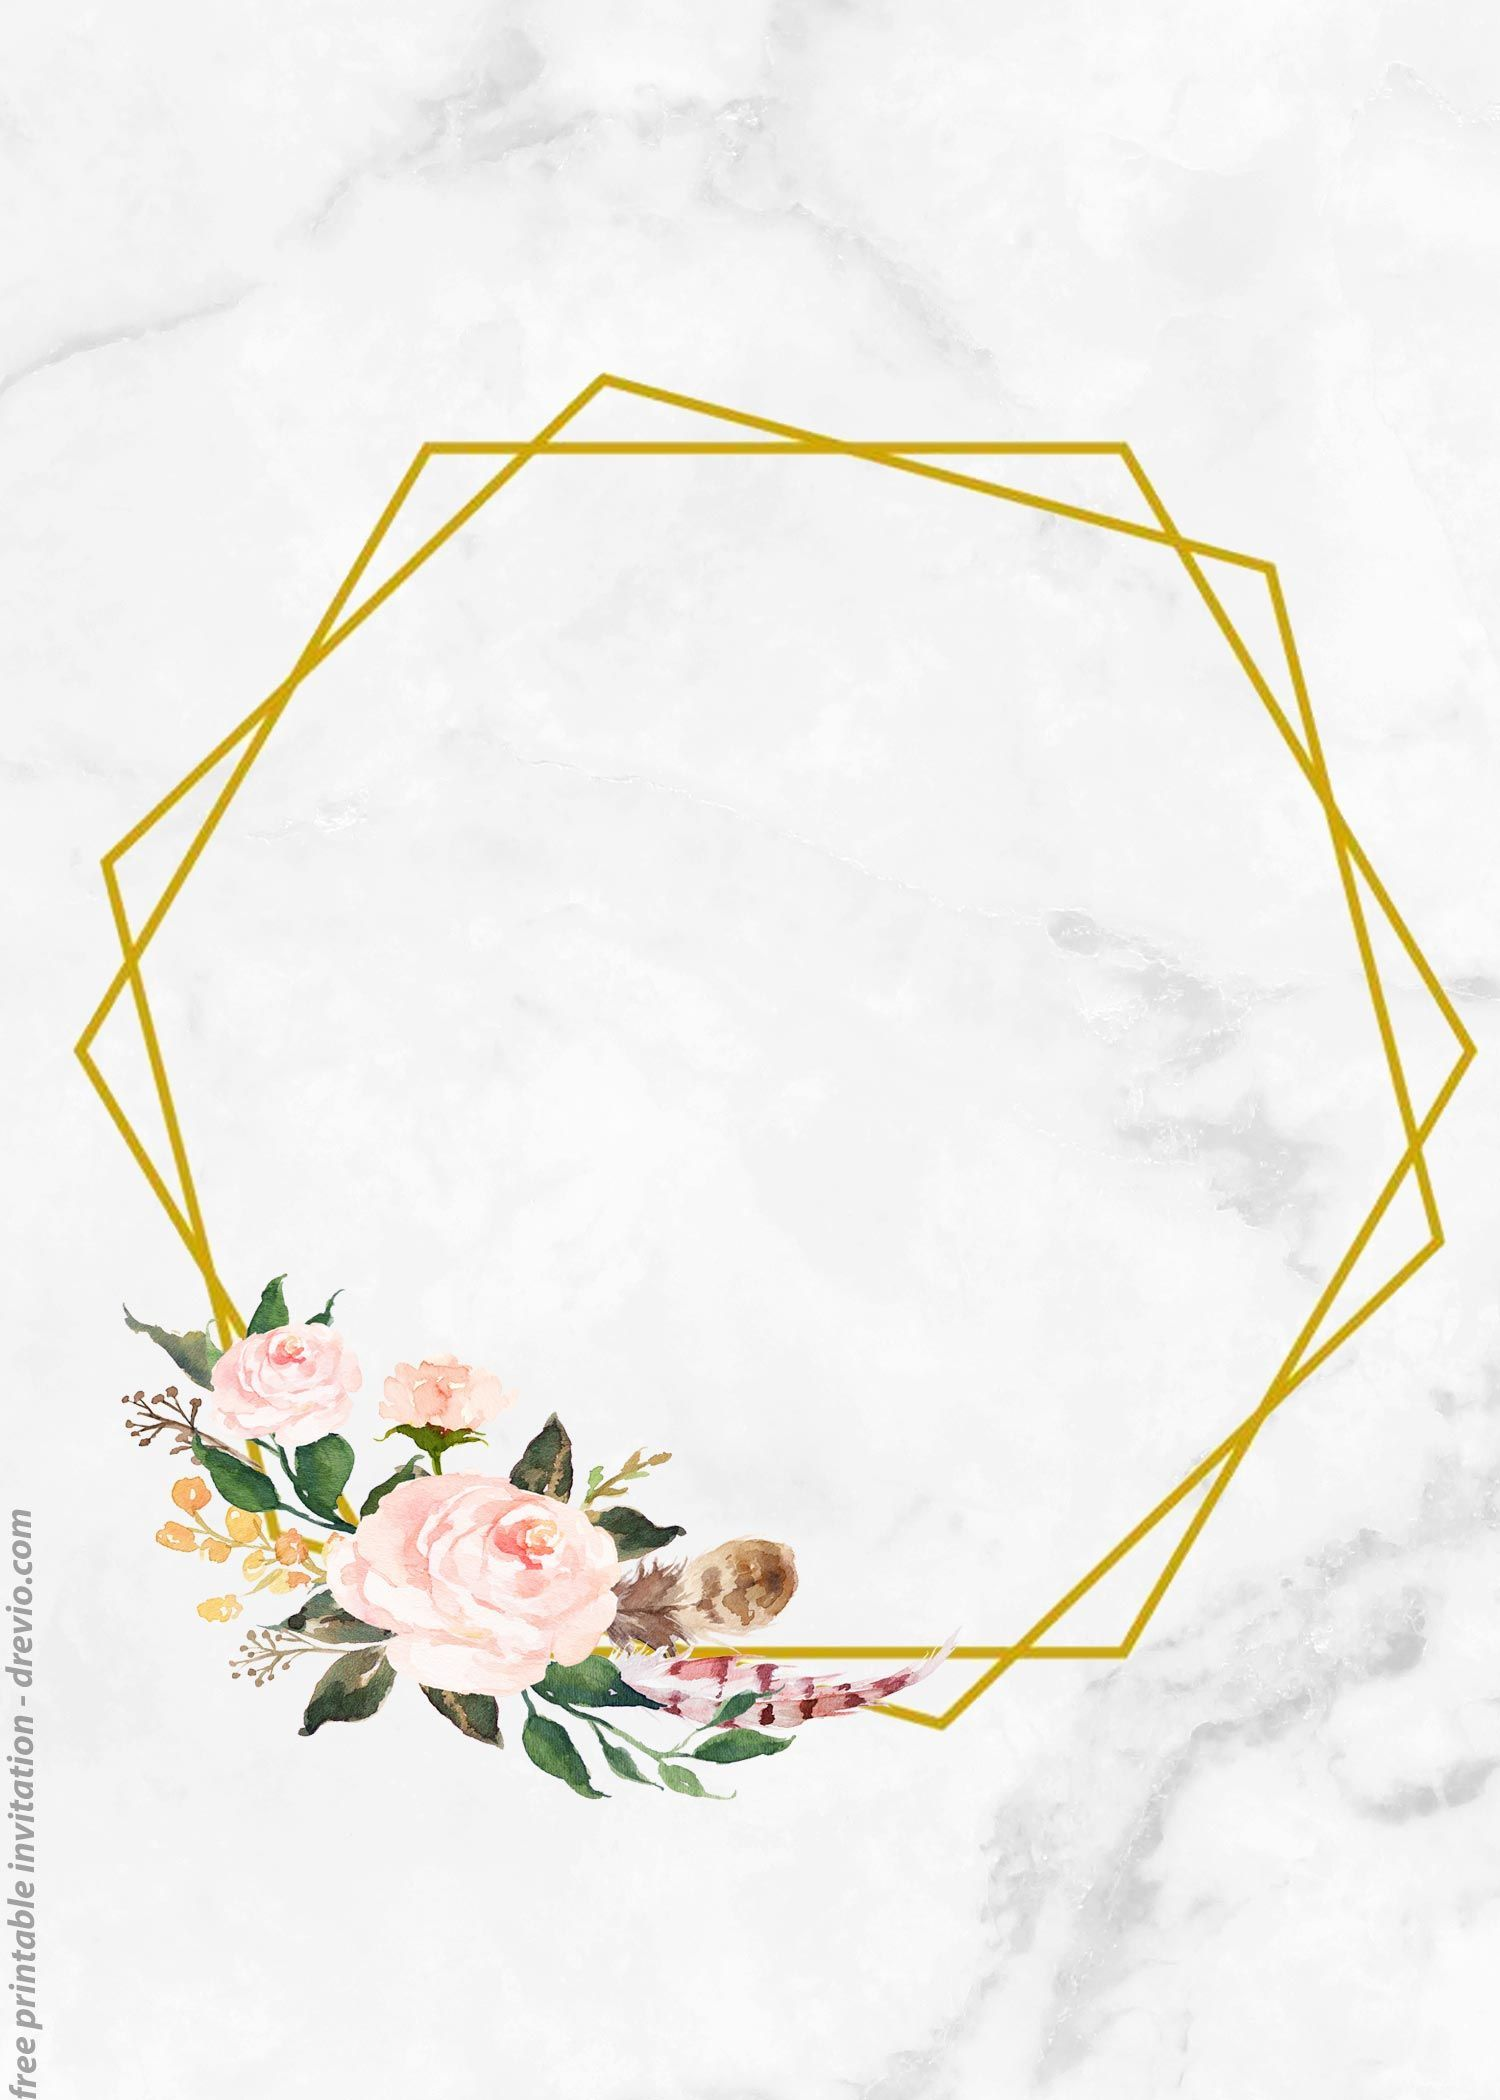 Get Free Vintage Floral Watercolor With Marble Invitation Templates Frame Marble Invitation Floral Watercolor Floral Invitations Template